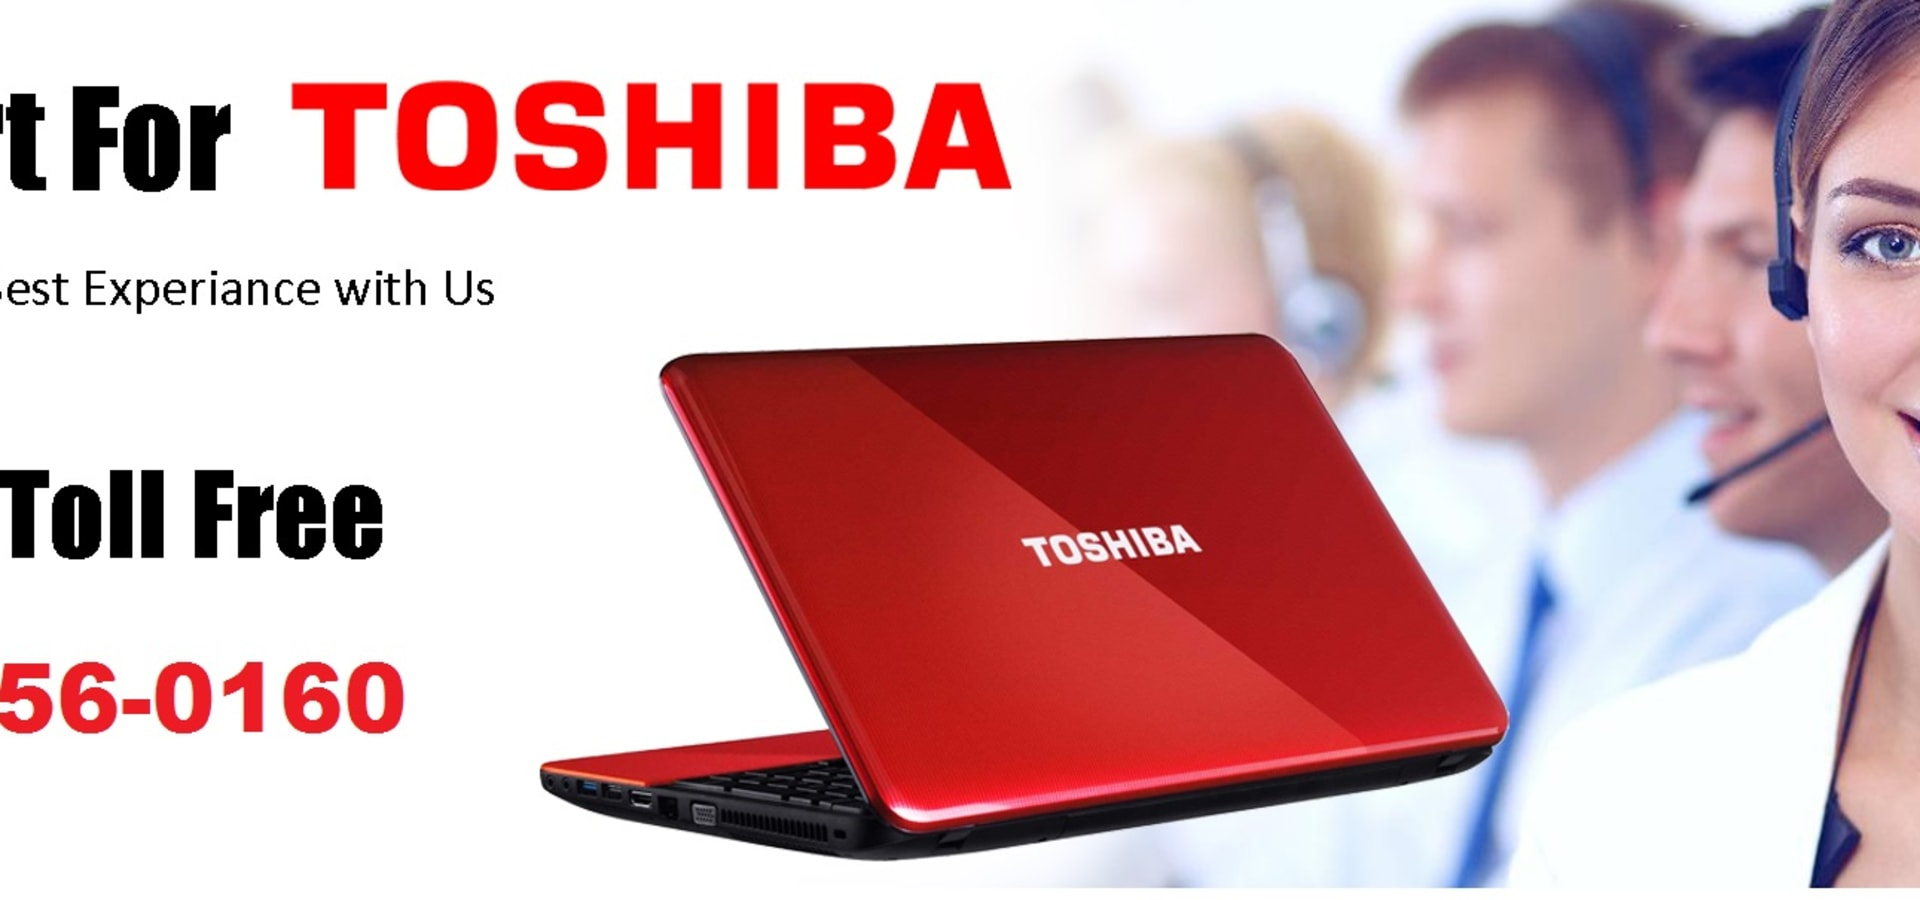 Toshiba Technical Support Service USA  +1-800-256-0160 | Helpline  (Australia Call : +61-180-095-4262)